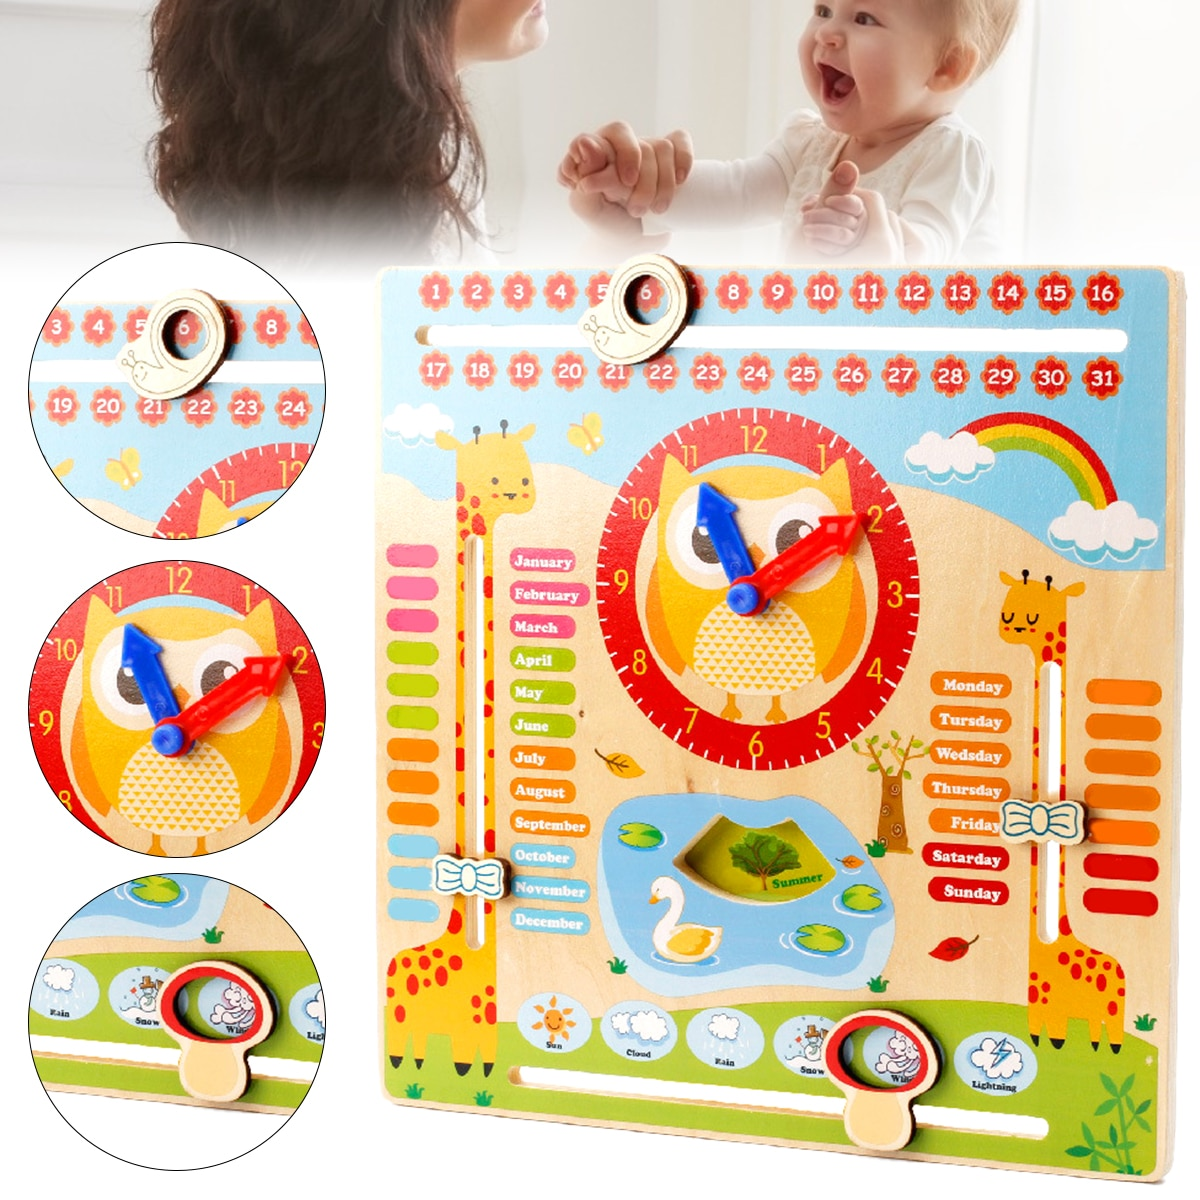 Baby Weather Season Calendar Clock Time Cognition Preschool Educational Teaching Aids Toys Montessori Wooden Toys For Children